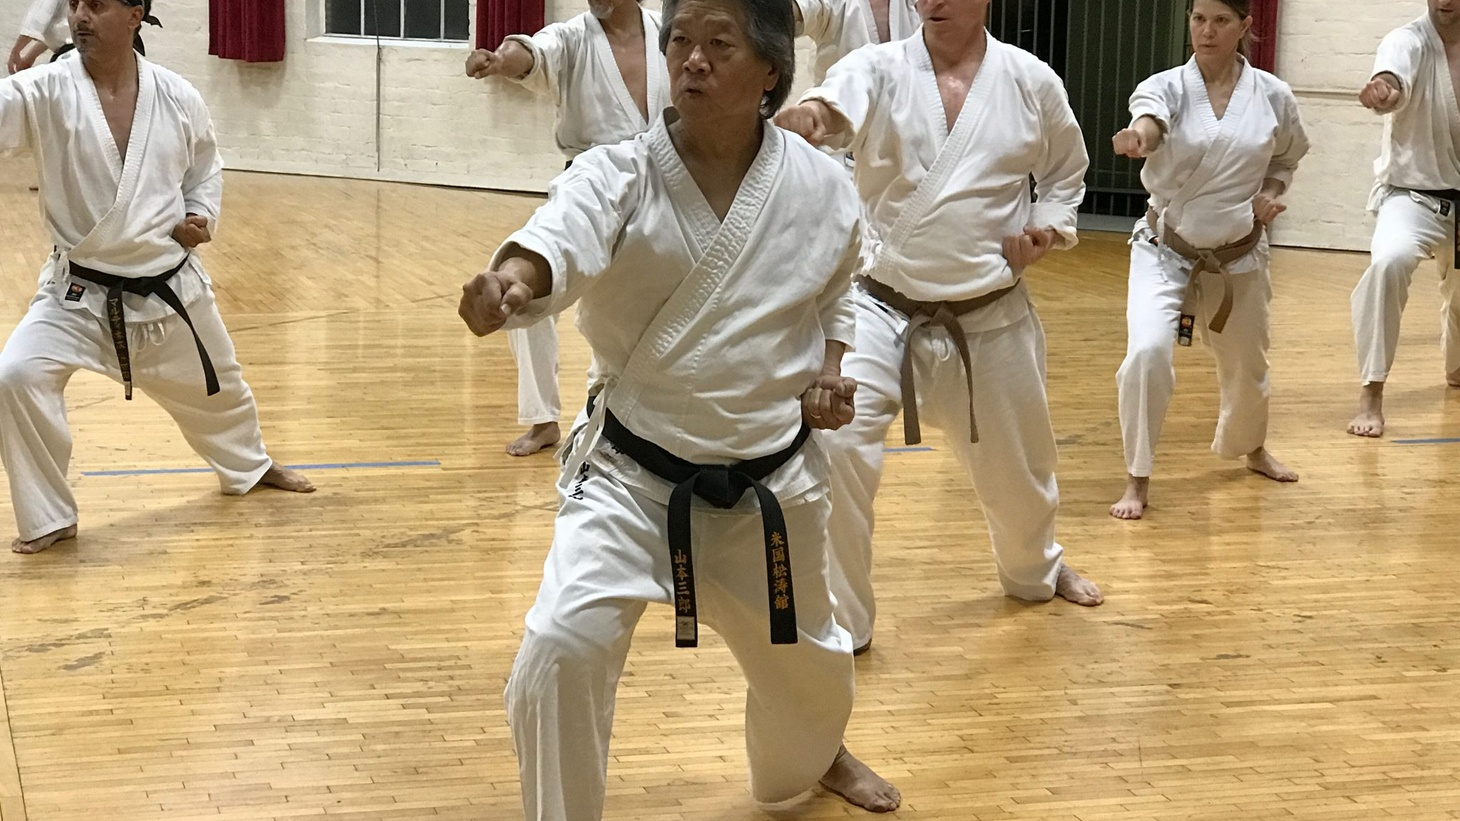 Geoff Yamamoto has practiced karate with the Maryknoll Karate Club on and off for 53 years.